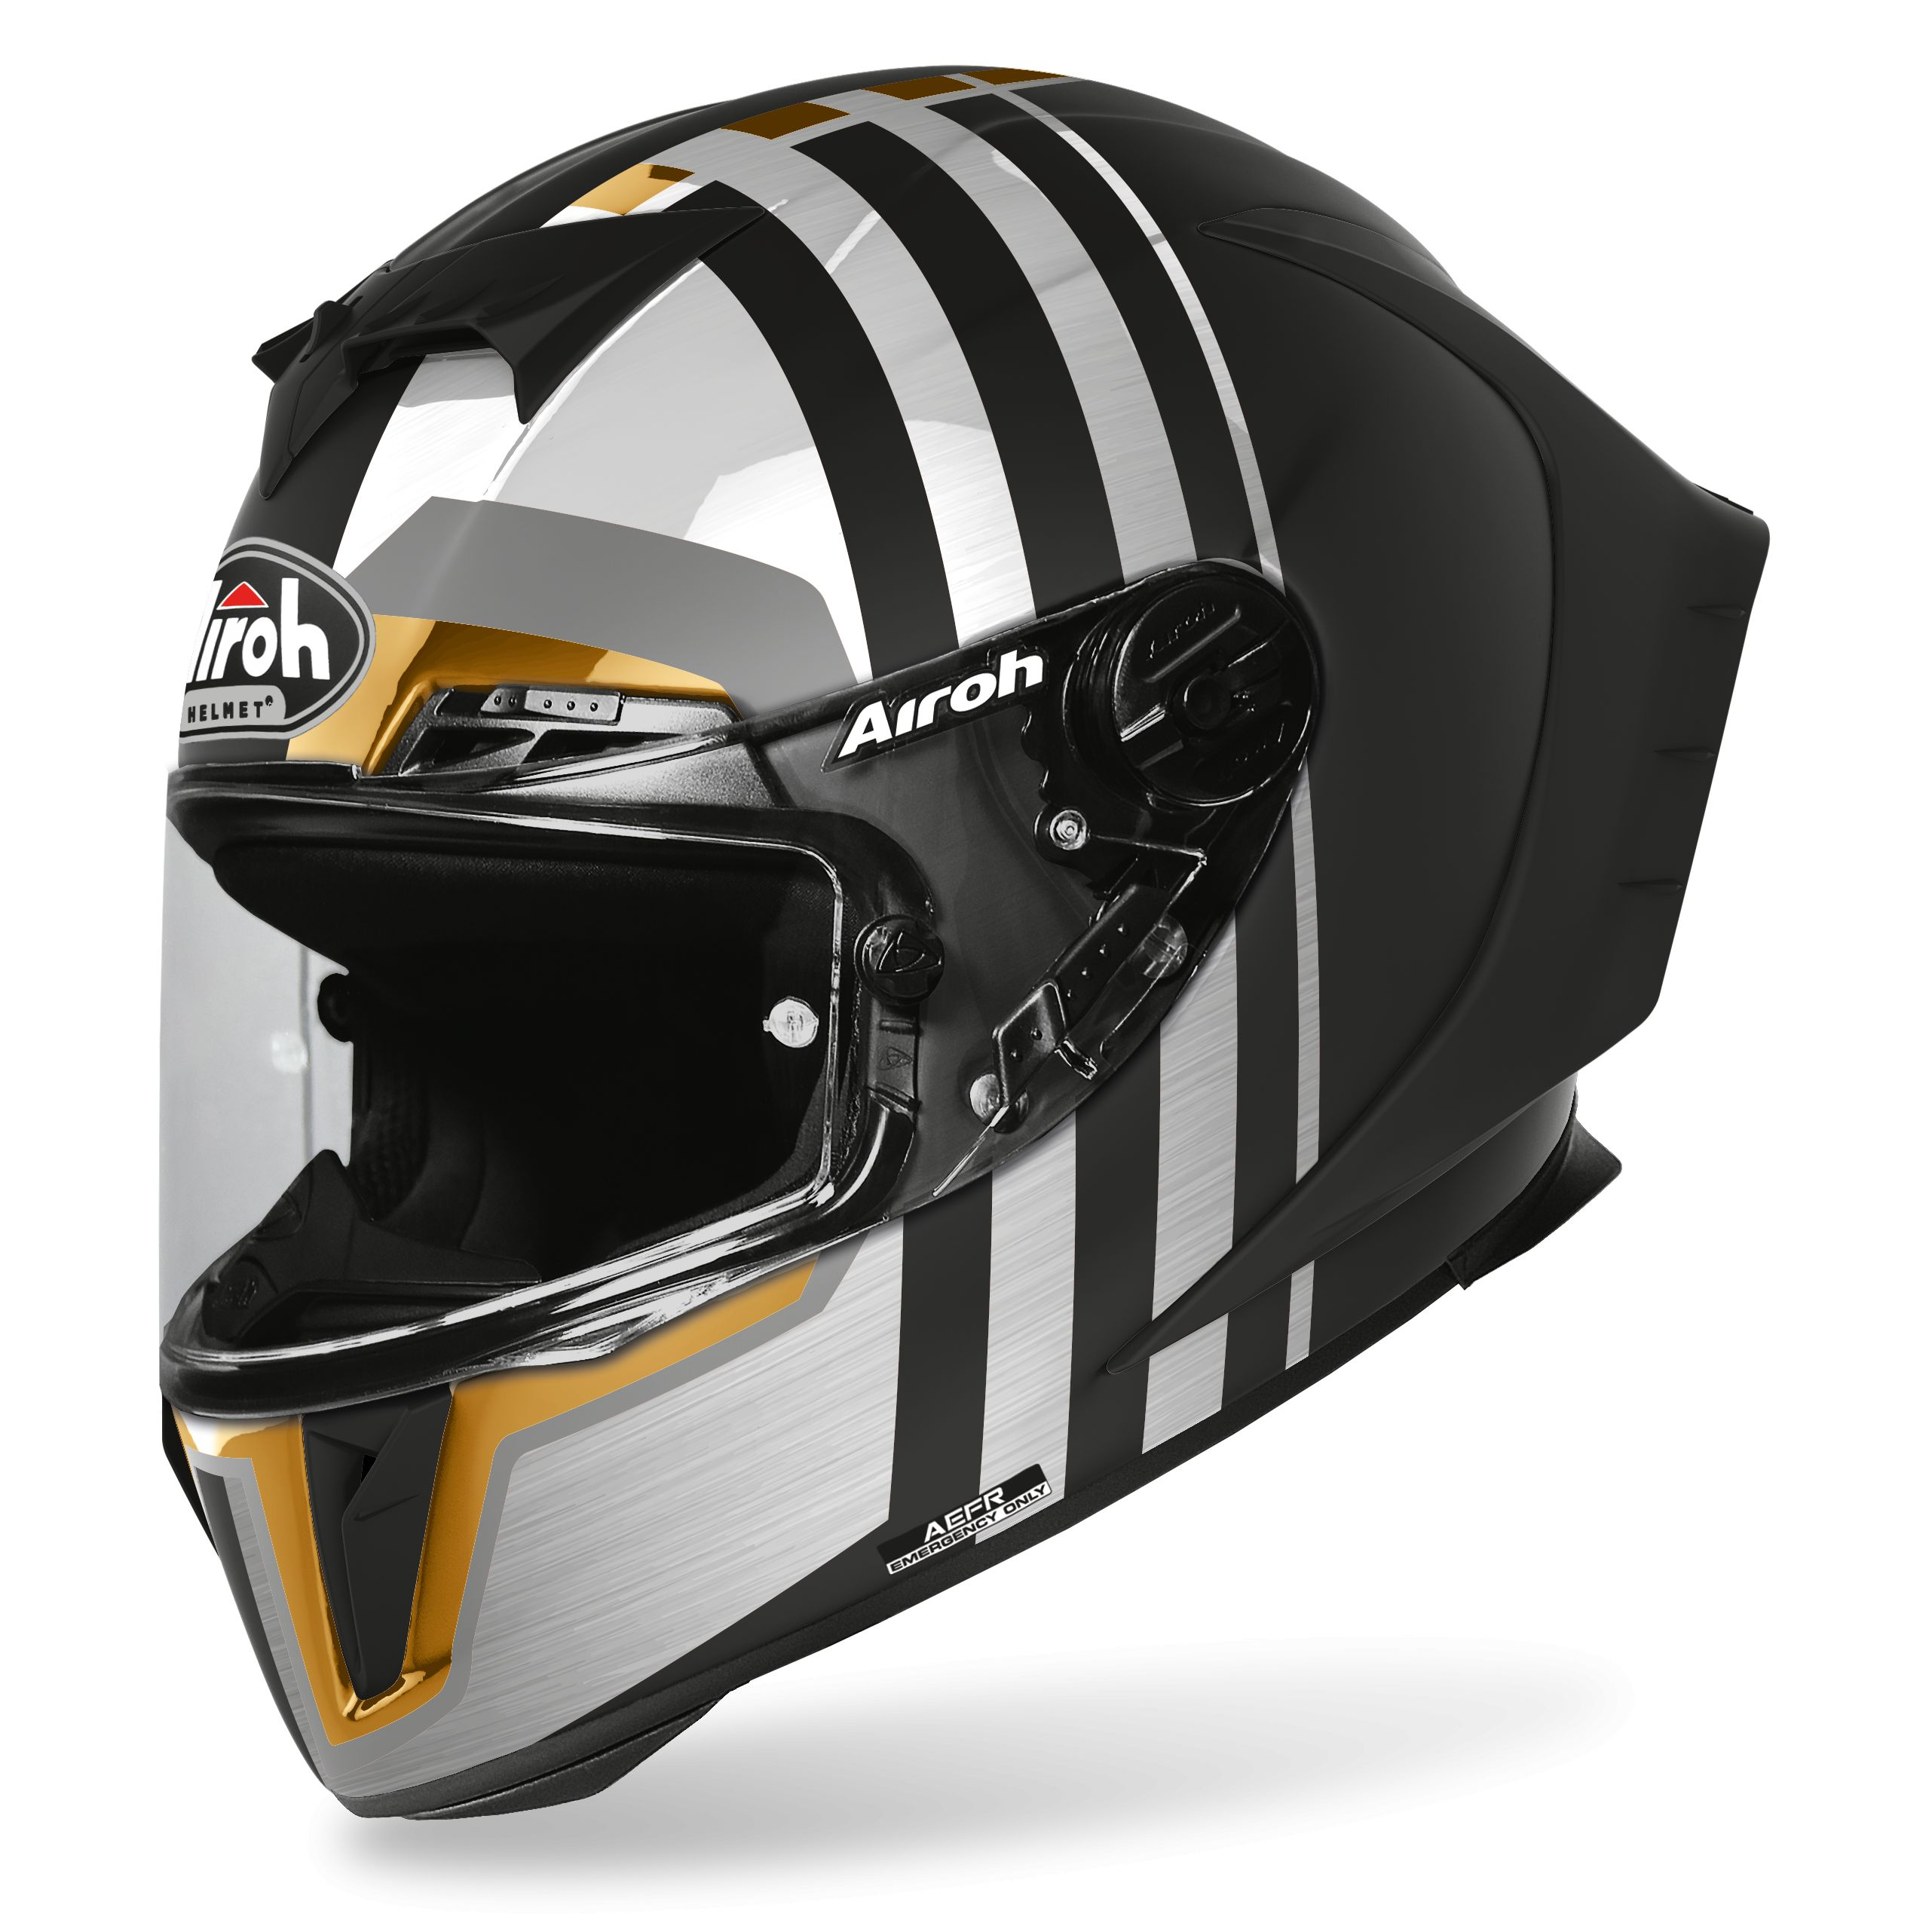 Casque Airoh GP550 S - SKYLINE - GOLD LIMITED EDITION